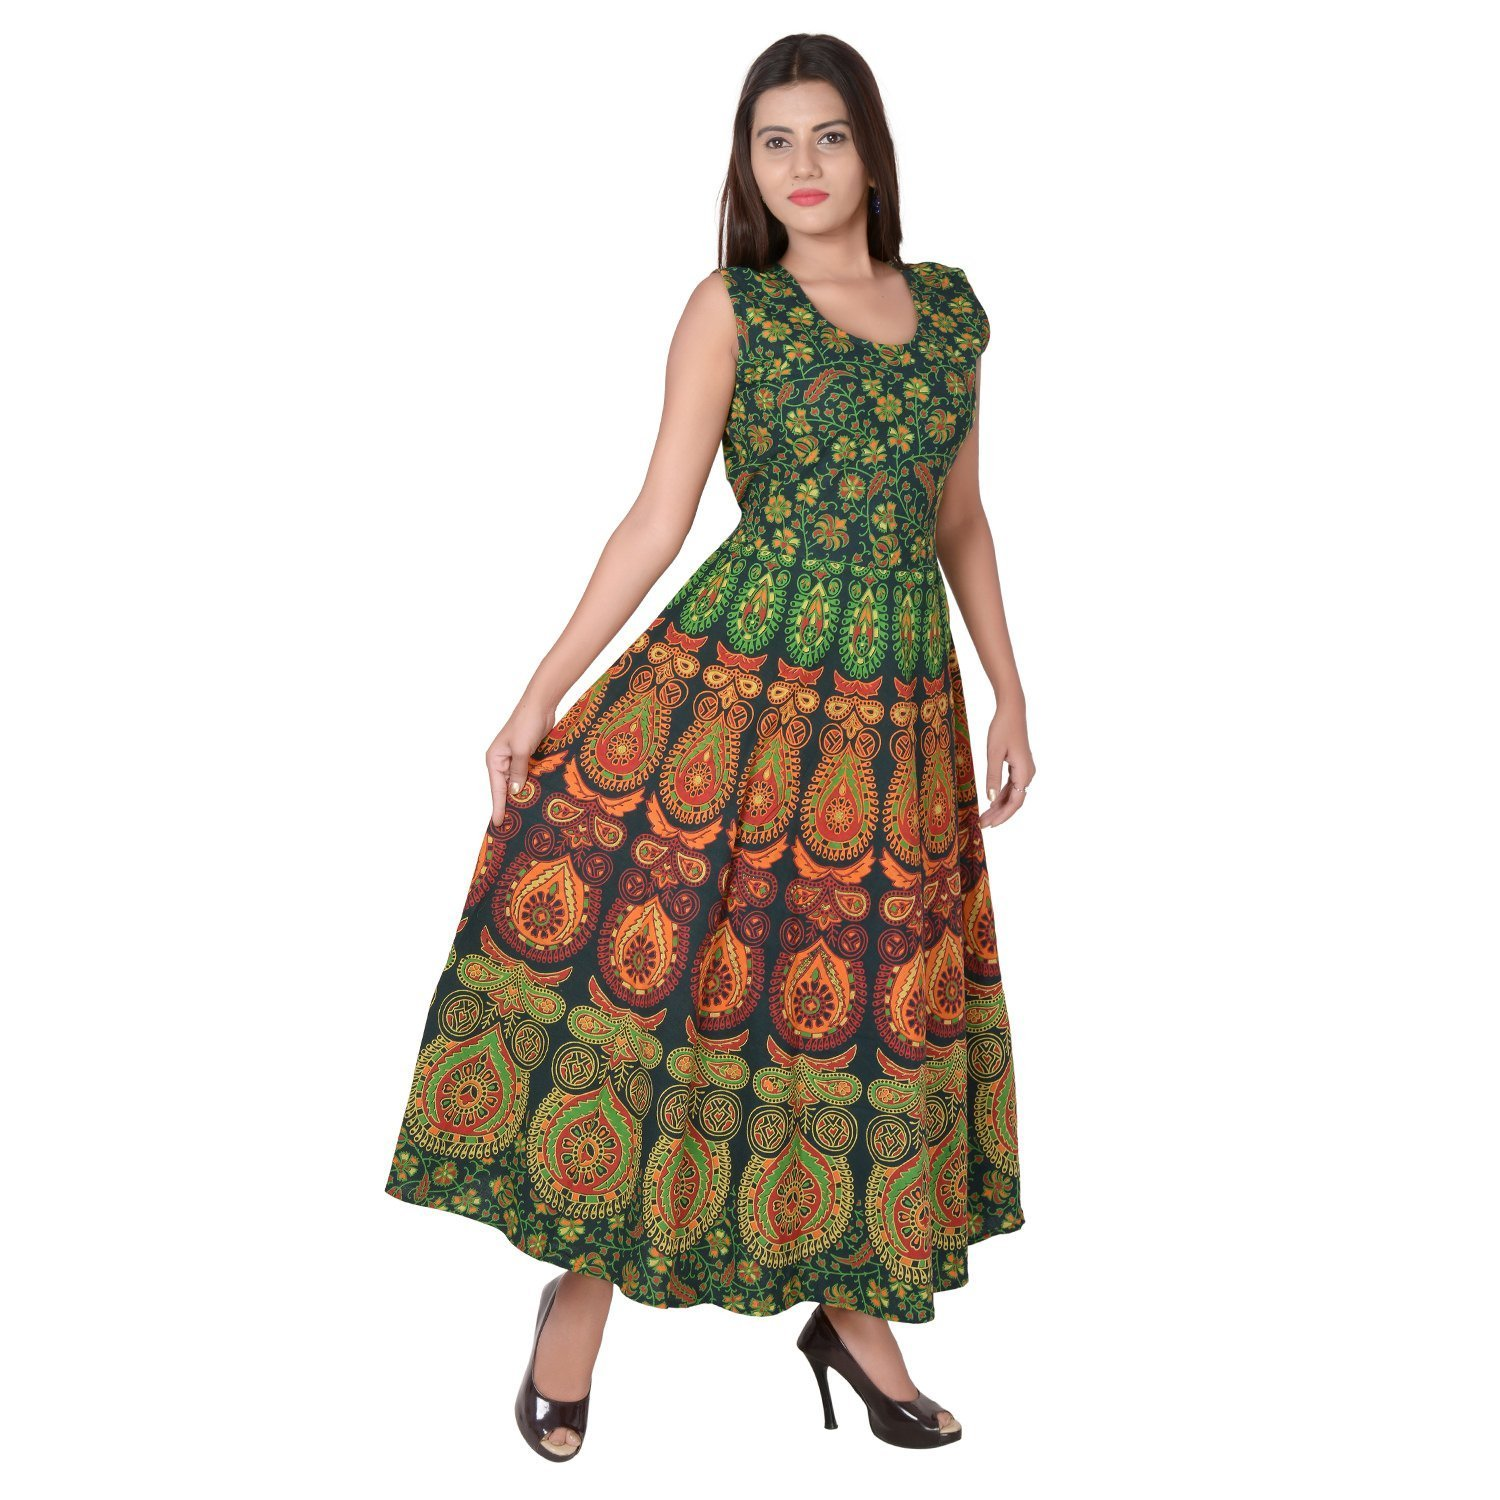 c246a0f02ab457 VARISAZ Women's Cotton Long Dress (KHUSHI1001, Green, Medium): Amazon.in:  Clothing & Accessories